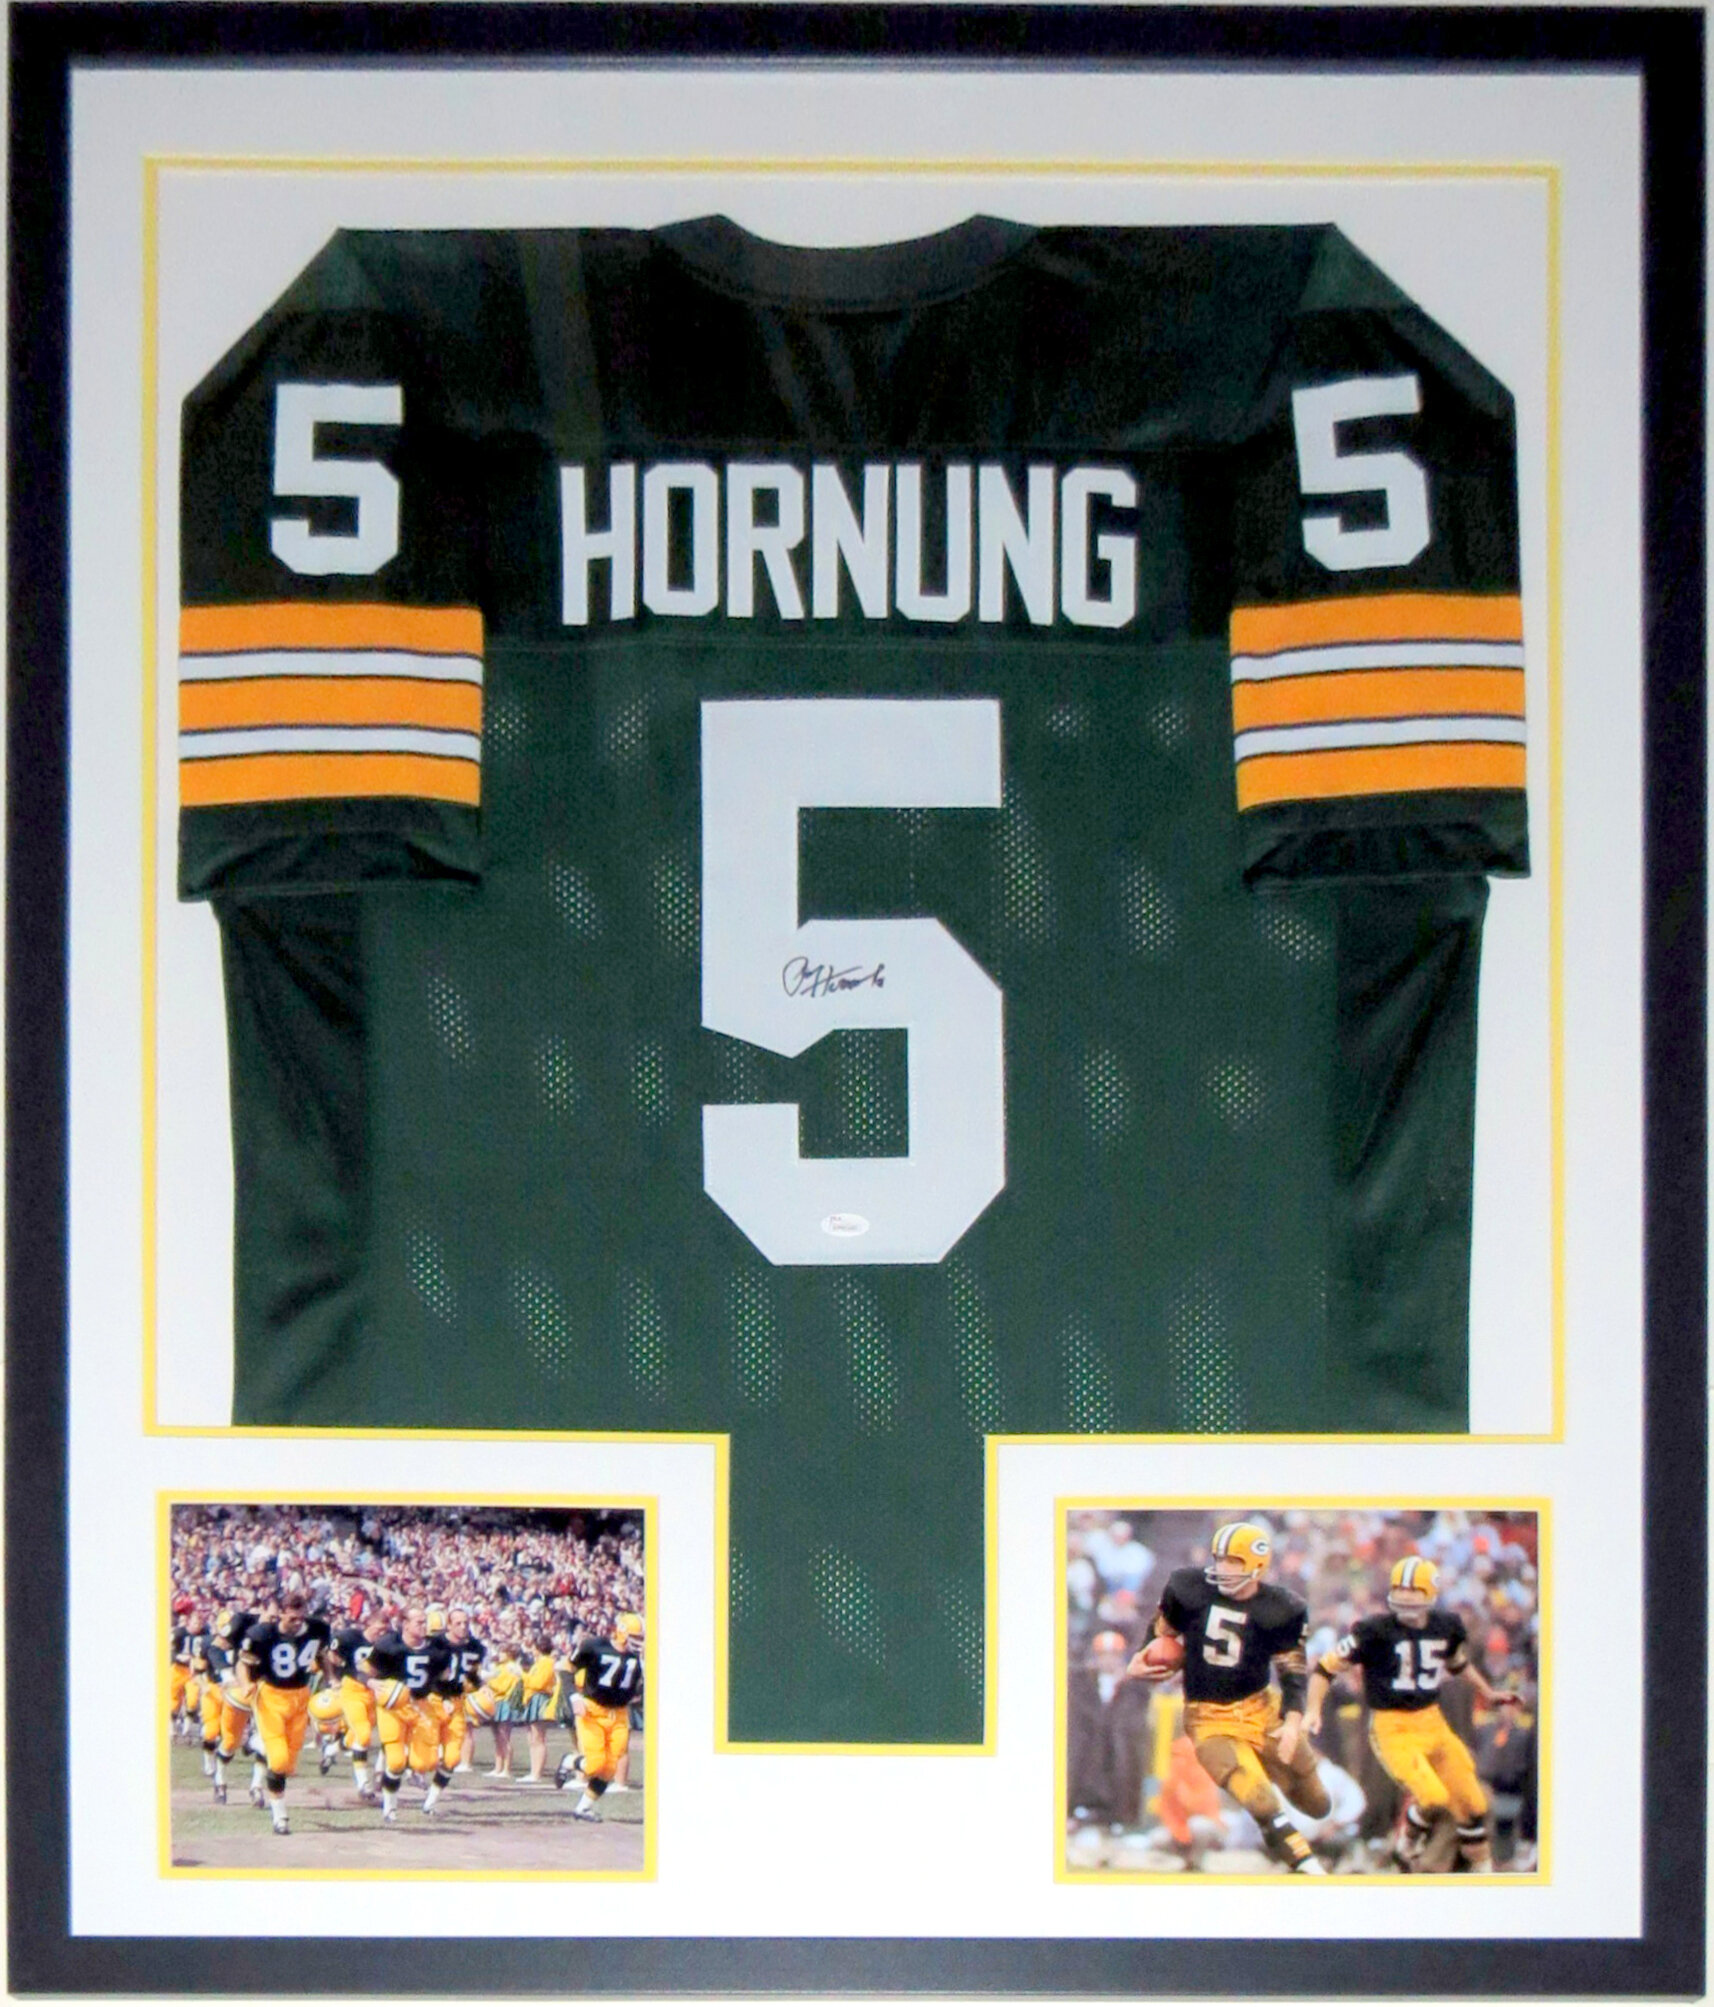 Paul Hornung Signed Green Bay Packers Jersey - JSA COA Authenticated - Professionally Framed 2 8x10 Photo 34x42